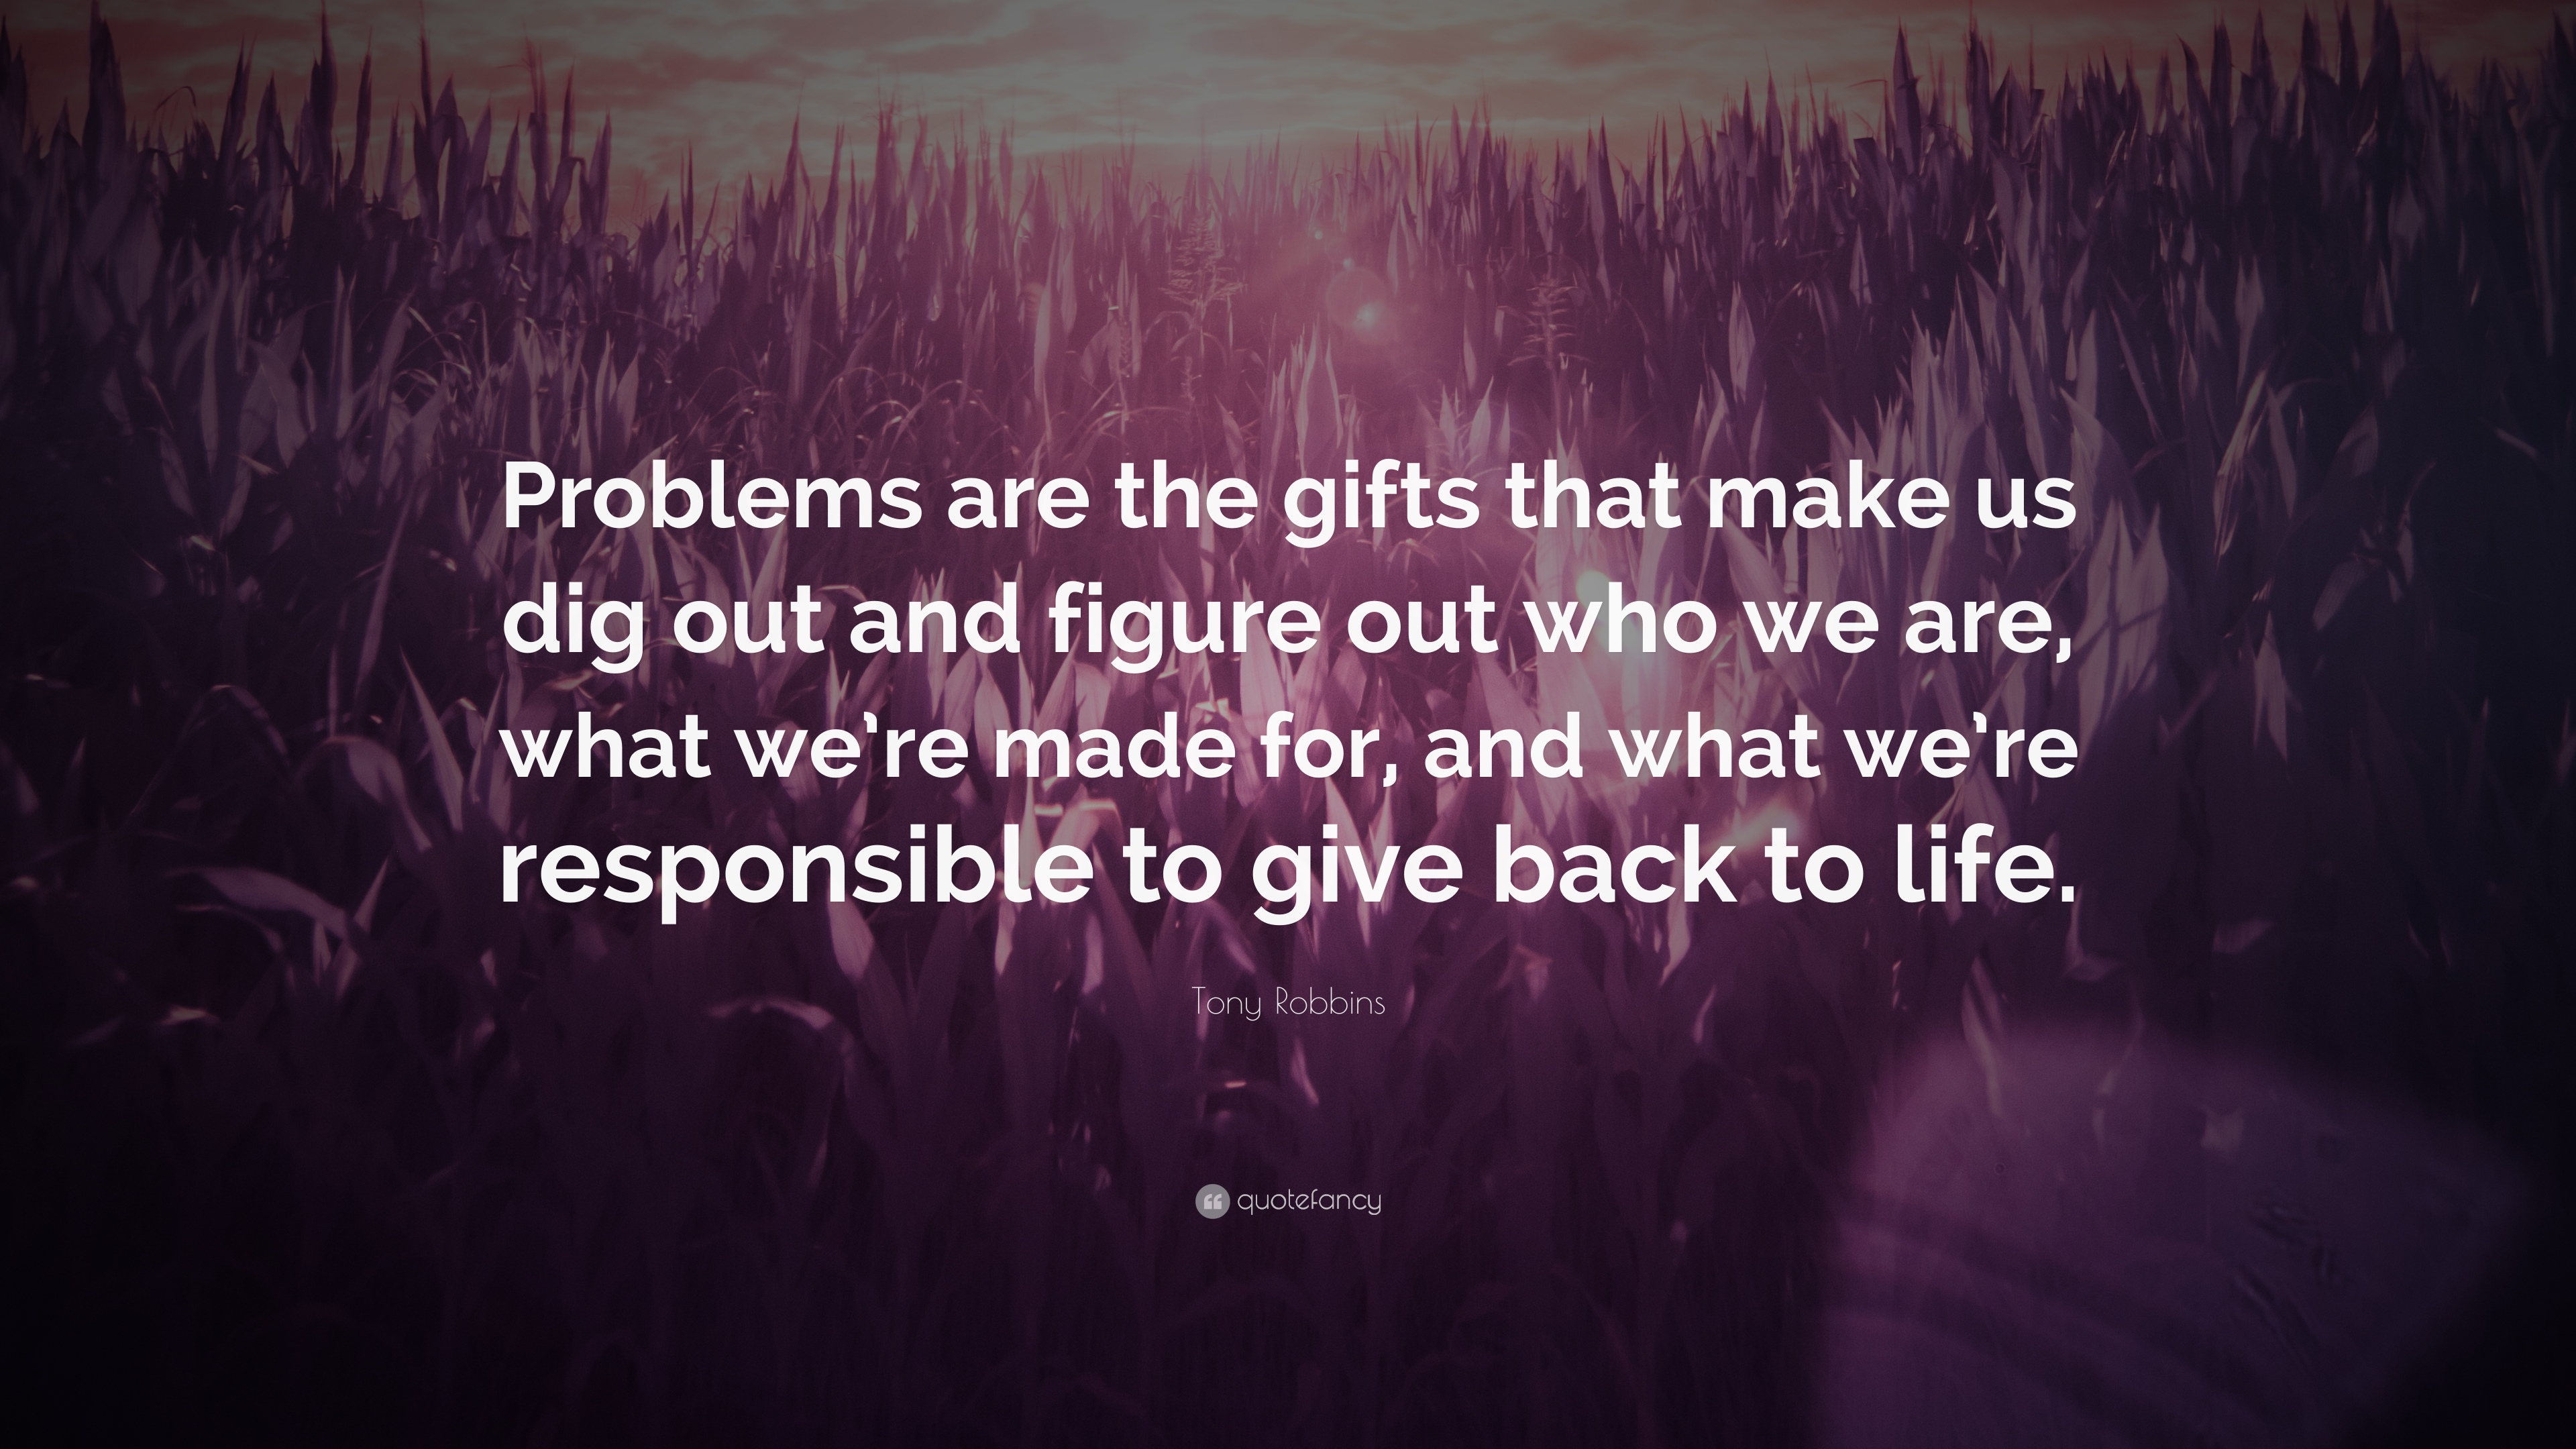 Tony Robbins Quote Problems Are The Gifts That Make Us Dig Out And